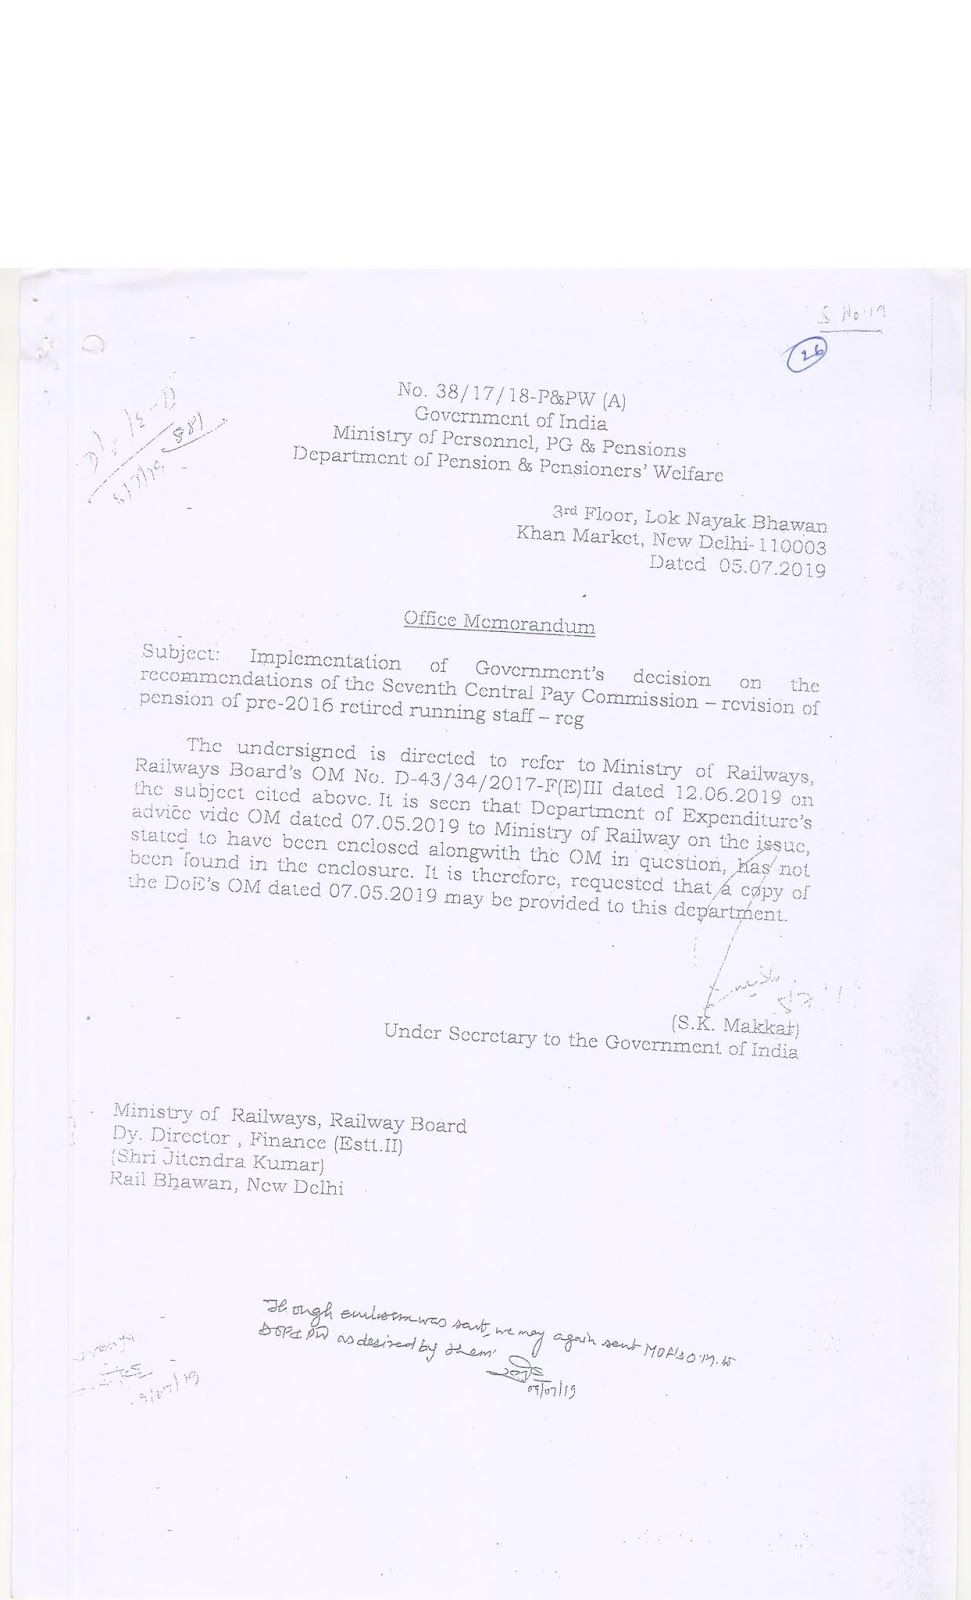 Running Staff revision of pension of pre-2016